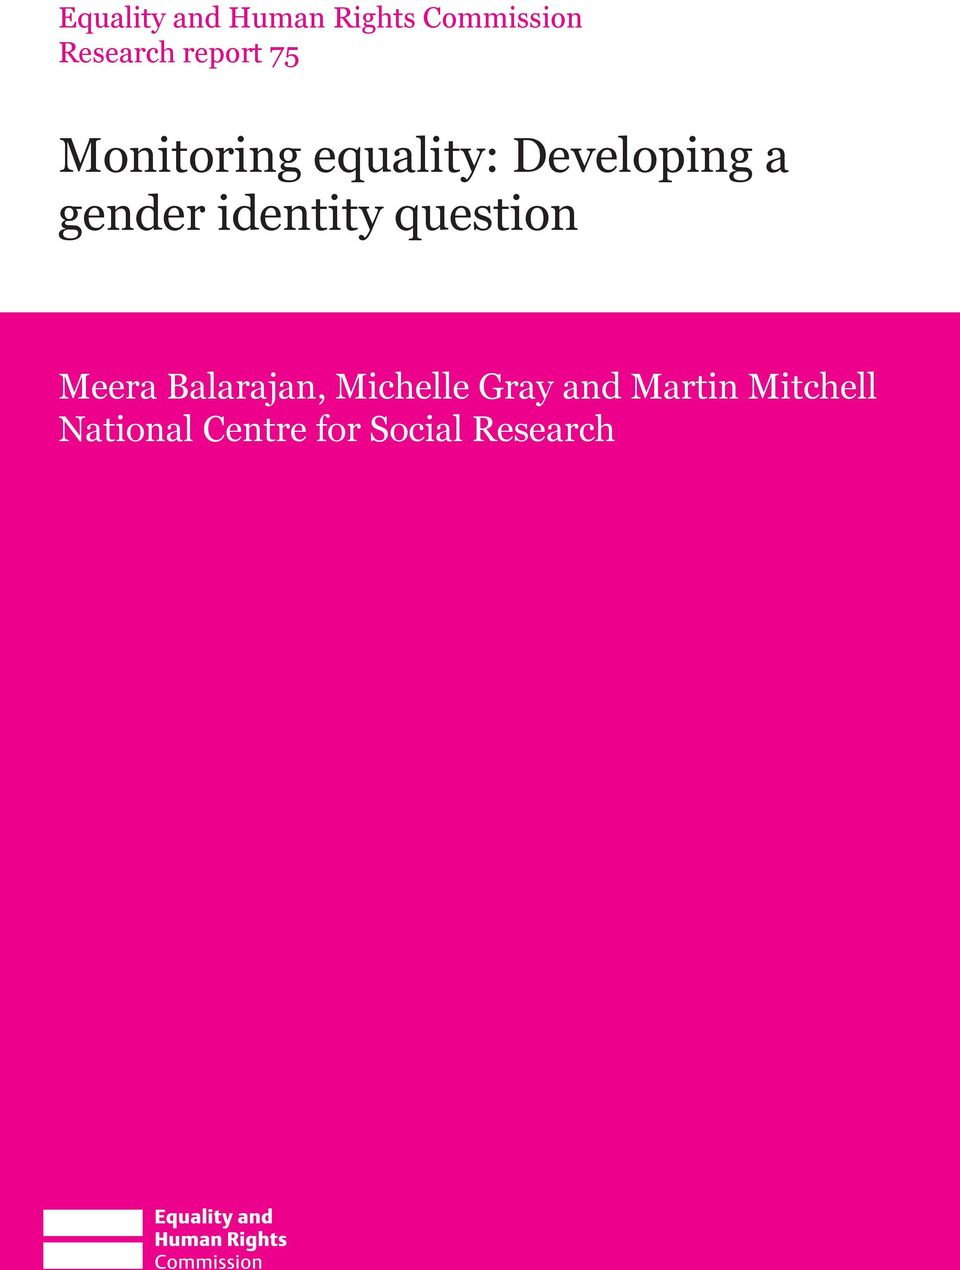 identity question Meera Balarajan, Michelle Gray